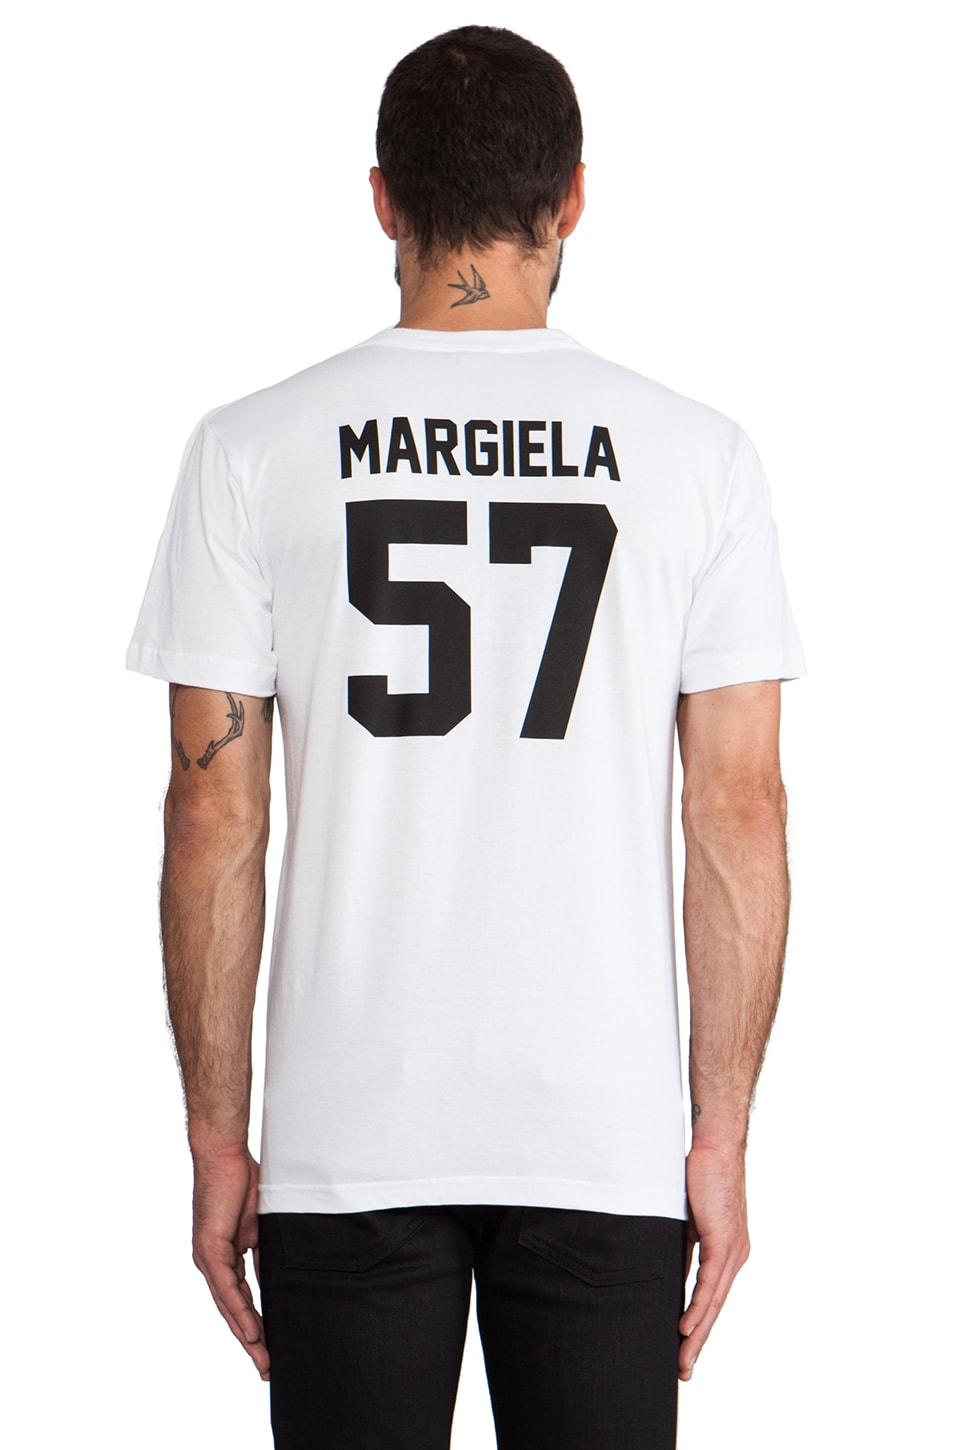 LPD New York Margiela Tee with Black Print in White